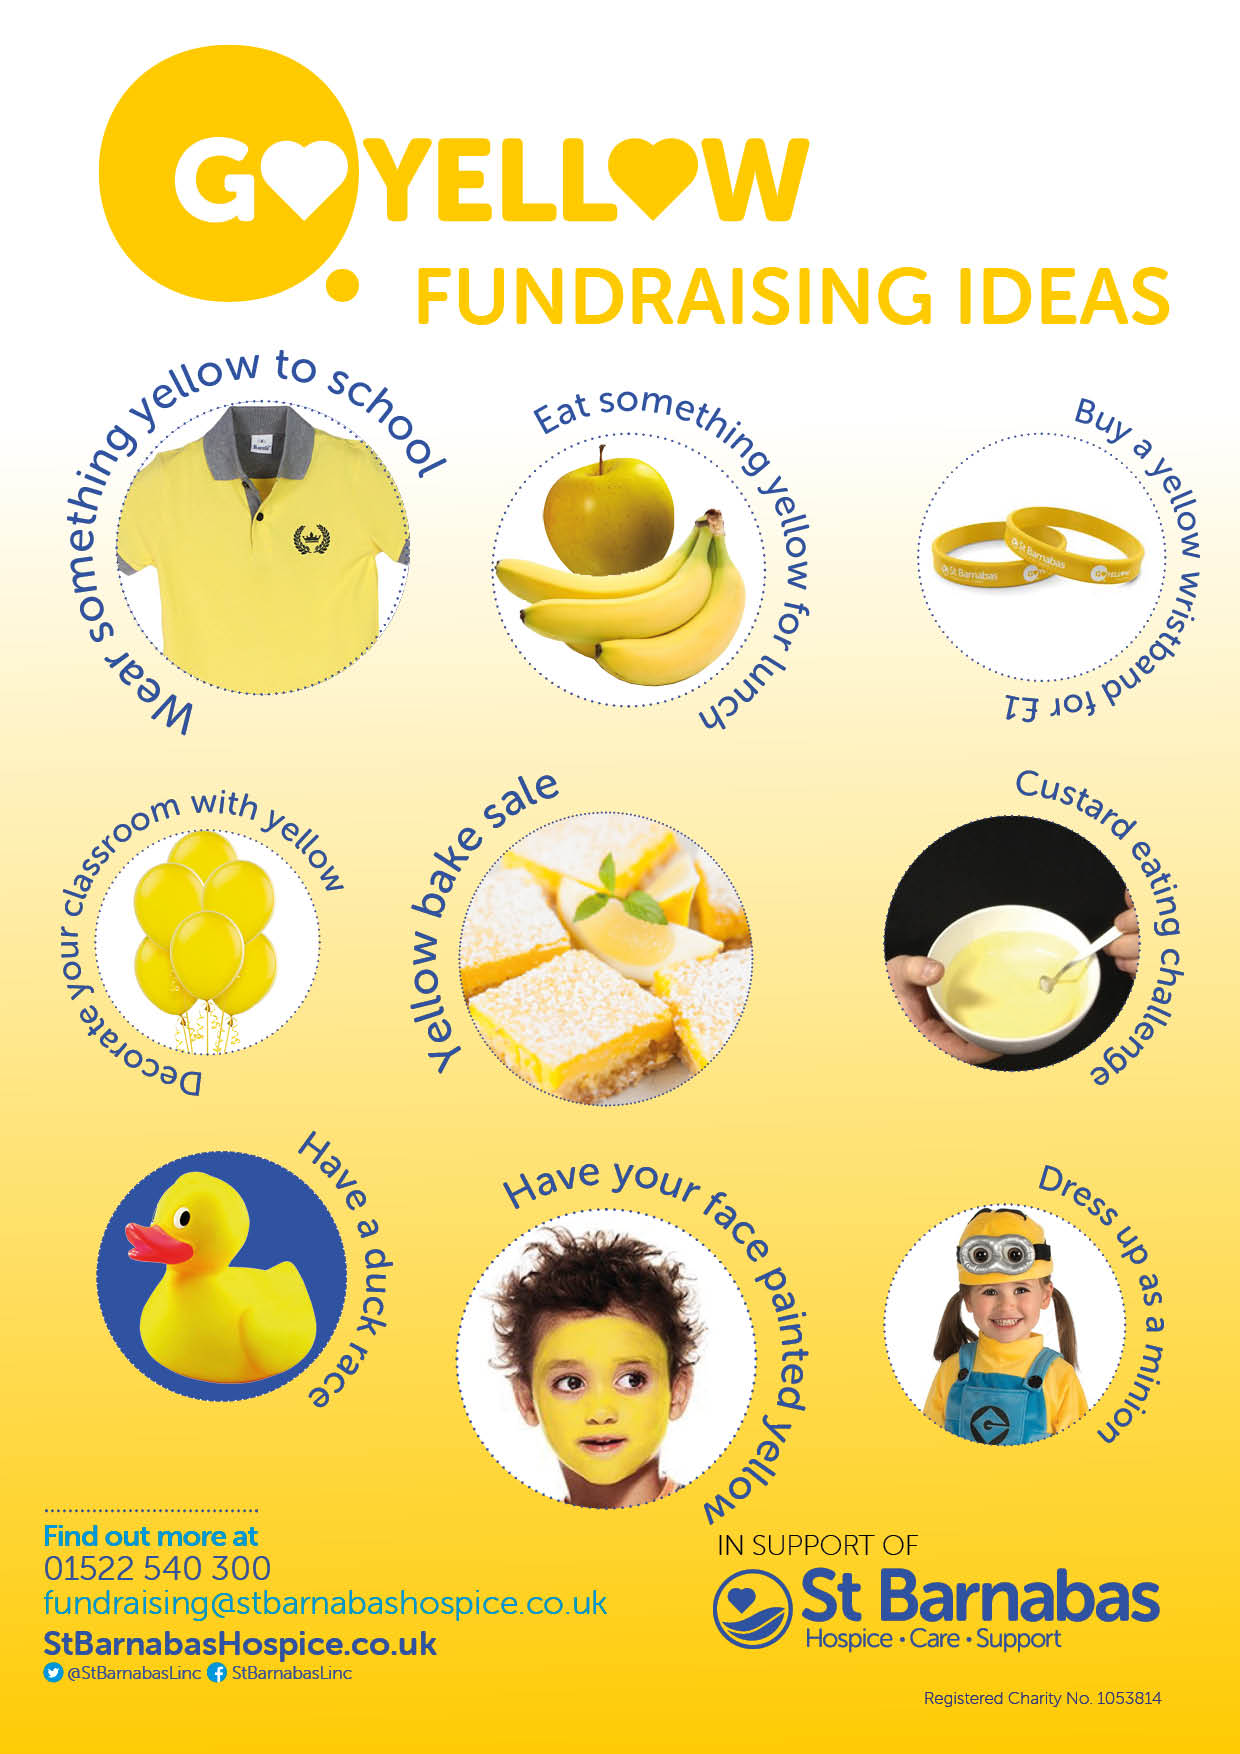 Go Yellow Schools Event Ideas